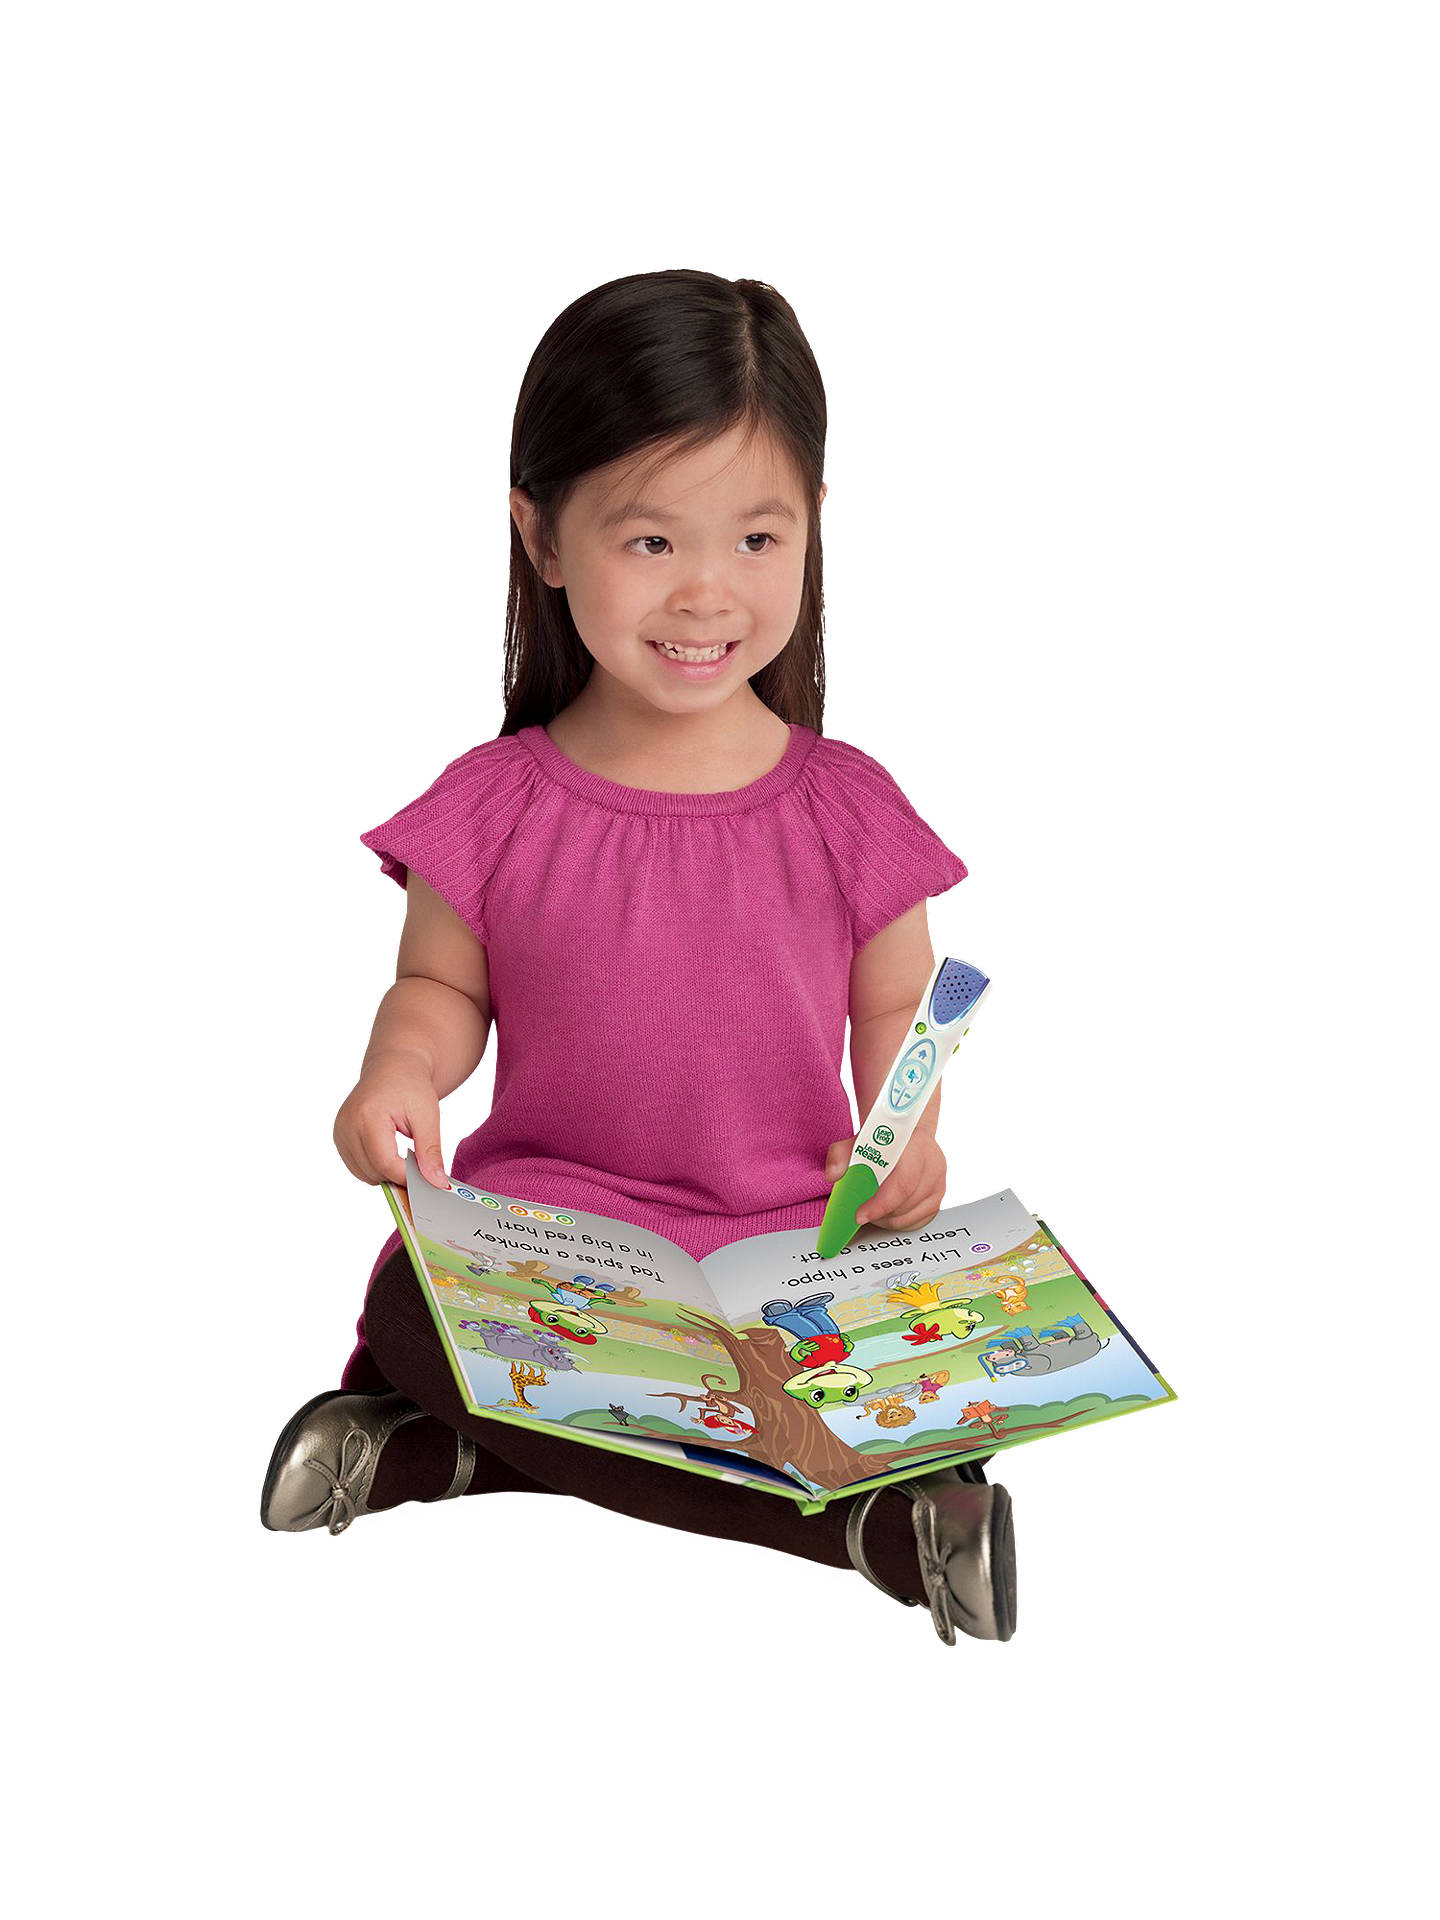 LeapFrog Green Leapreader Reading and Writing System at John Lewis